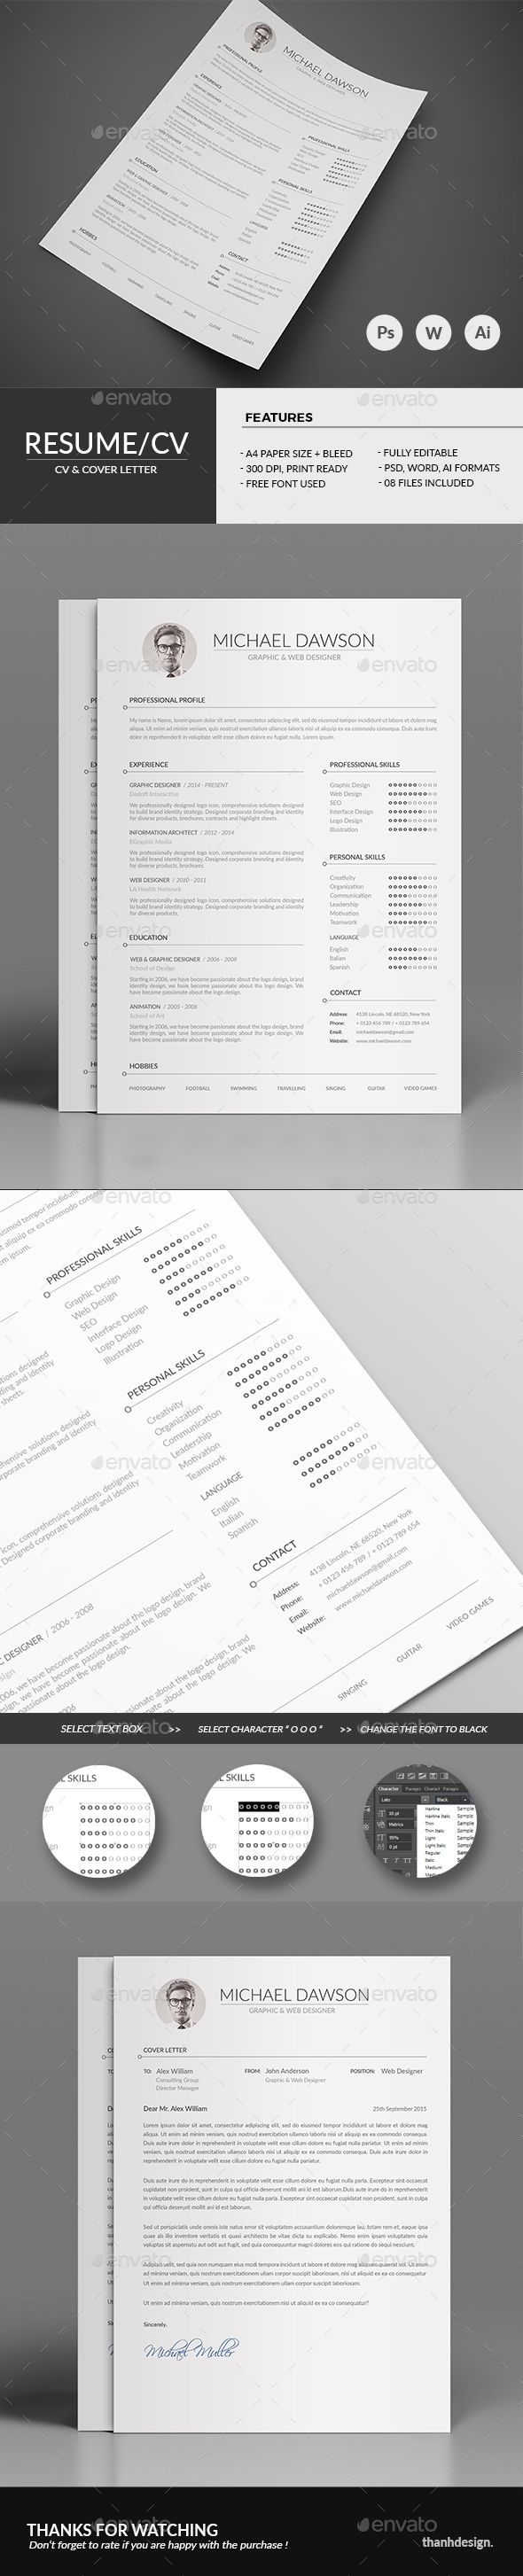 resume cv cover letter - What Is A Resume Cover Letter